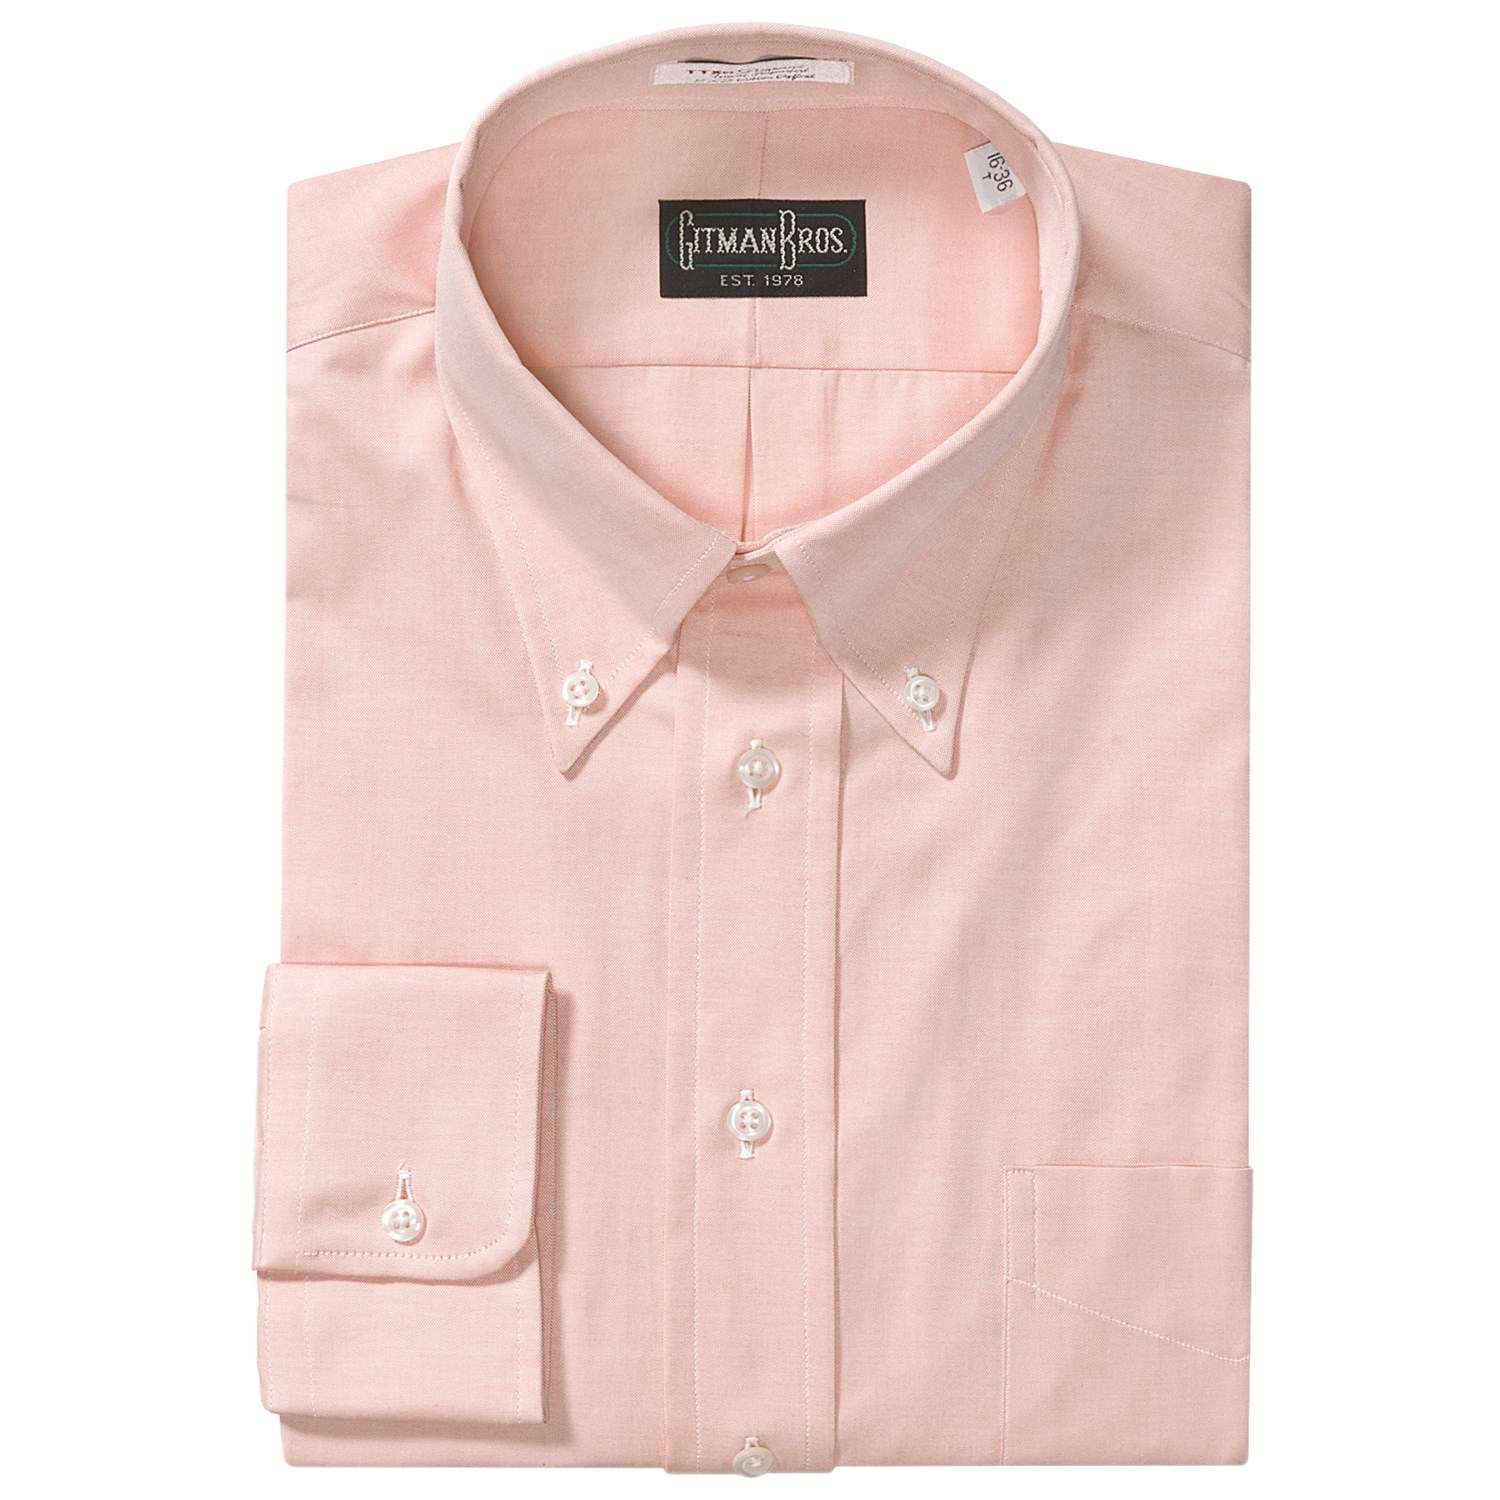 westport dress shirt button down long sleeve for big